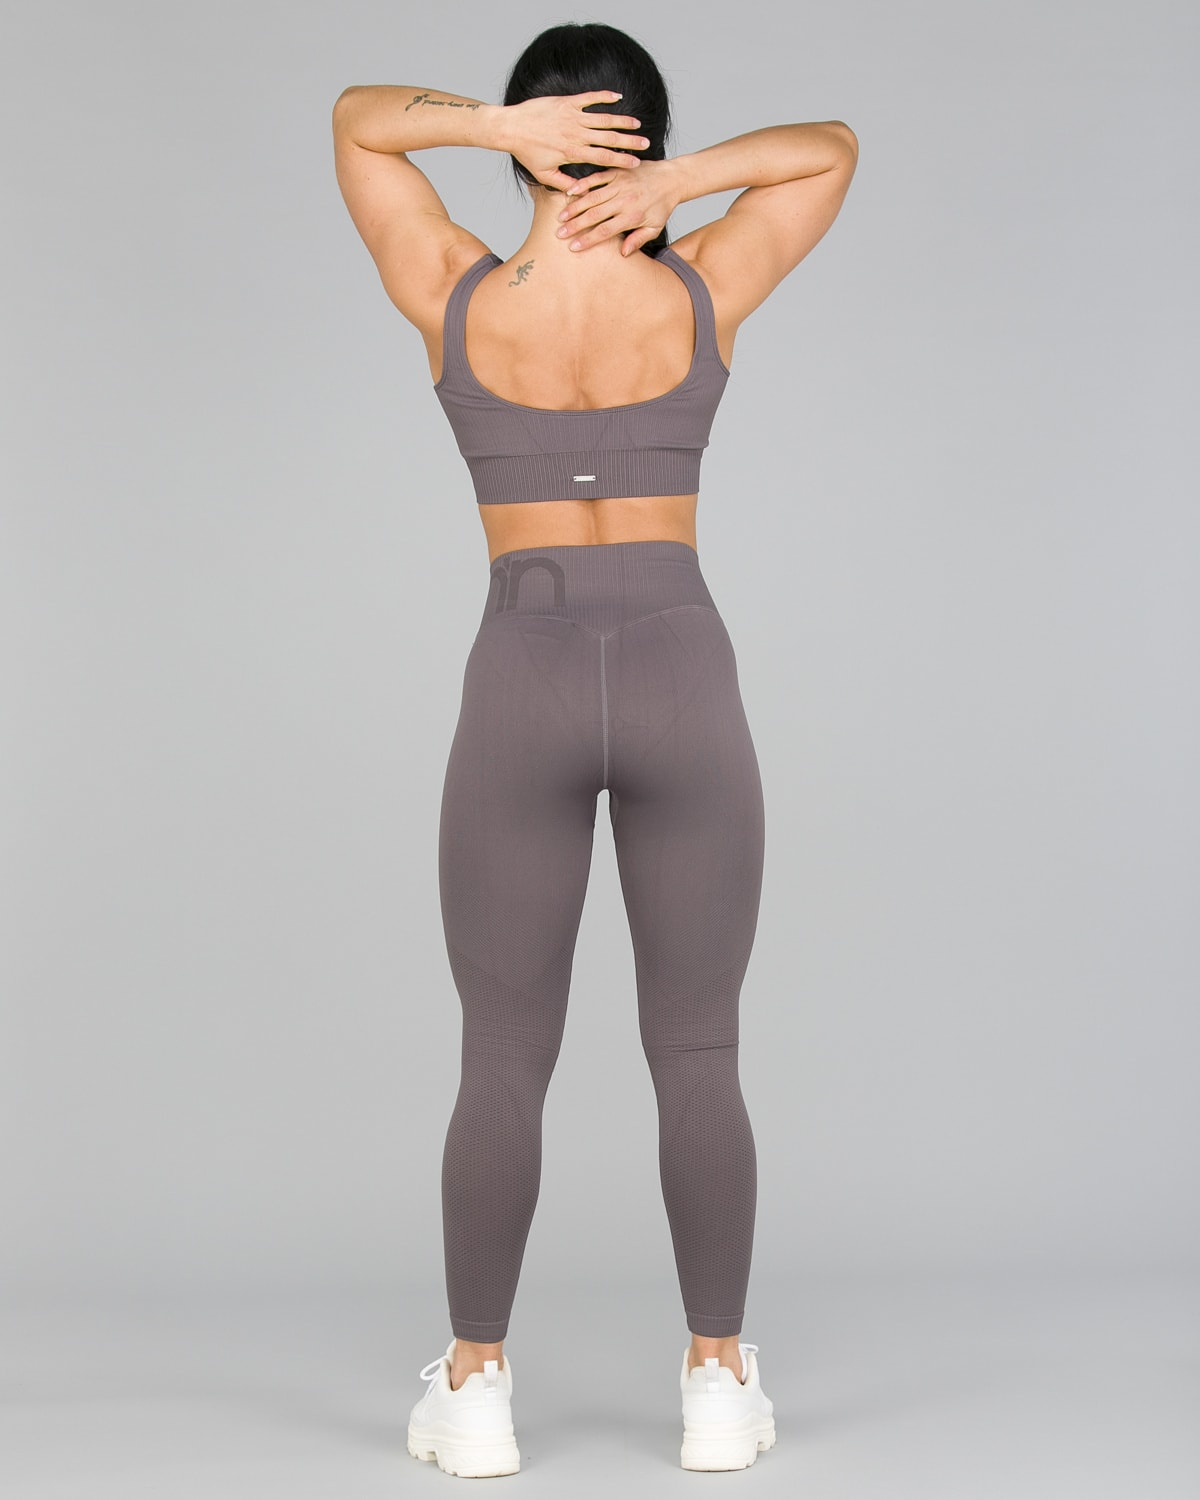 Aim'n Concrete Attention Seamless Tights4